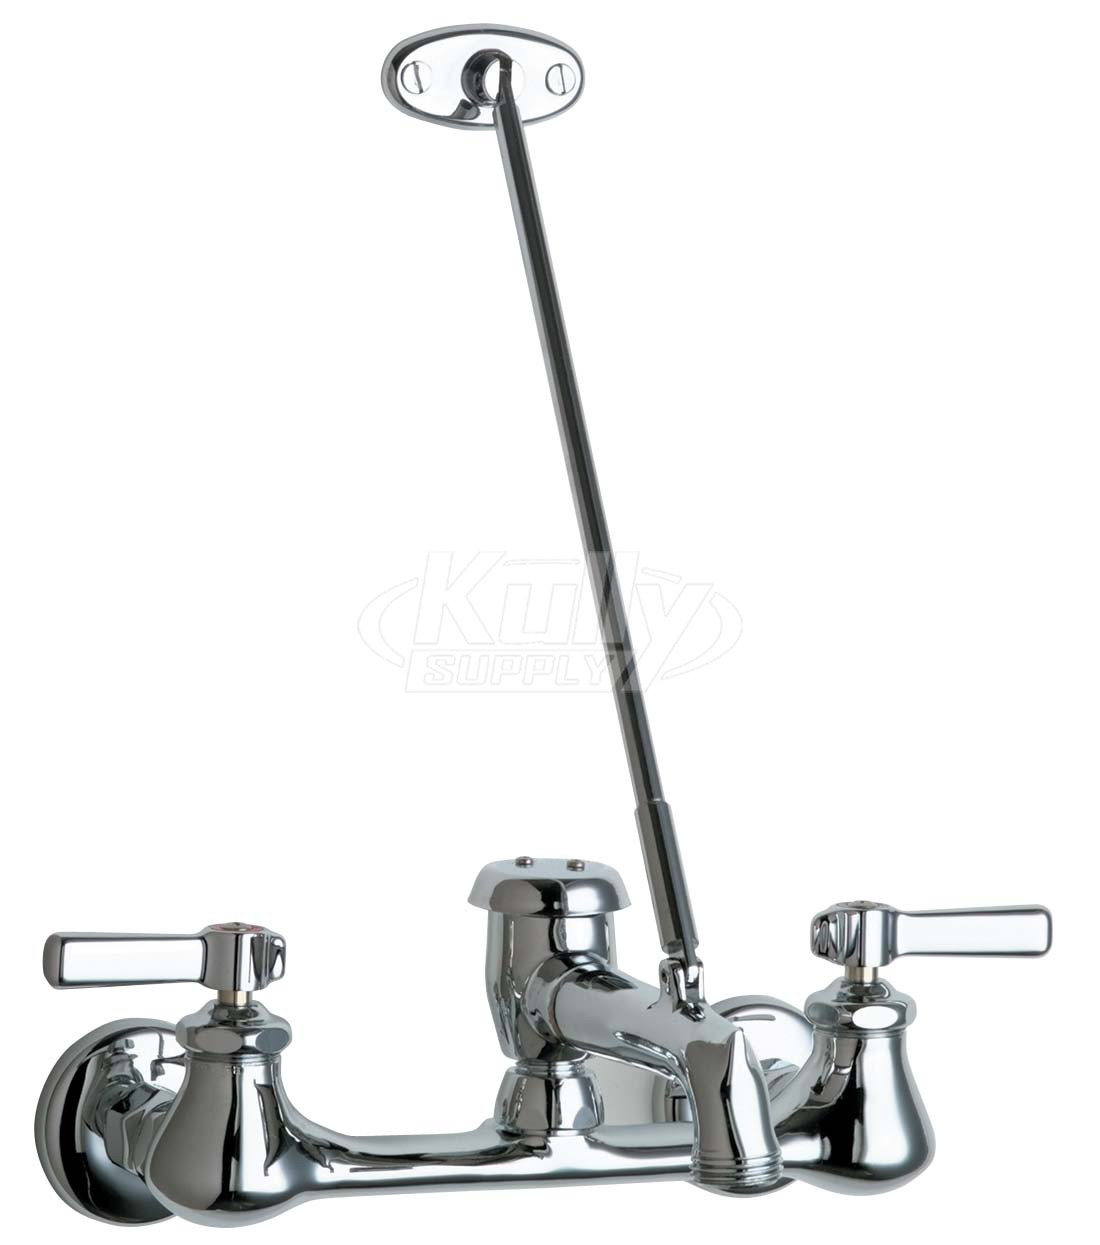 Chicago 540 Ld897swxfxkcp Sink Faucet